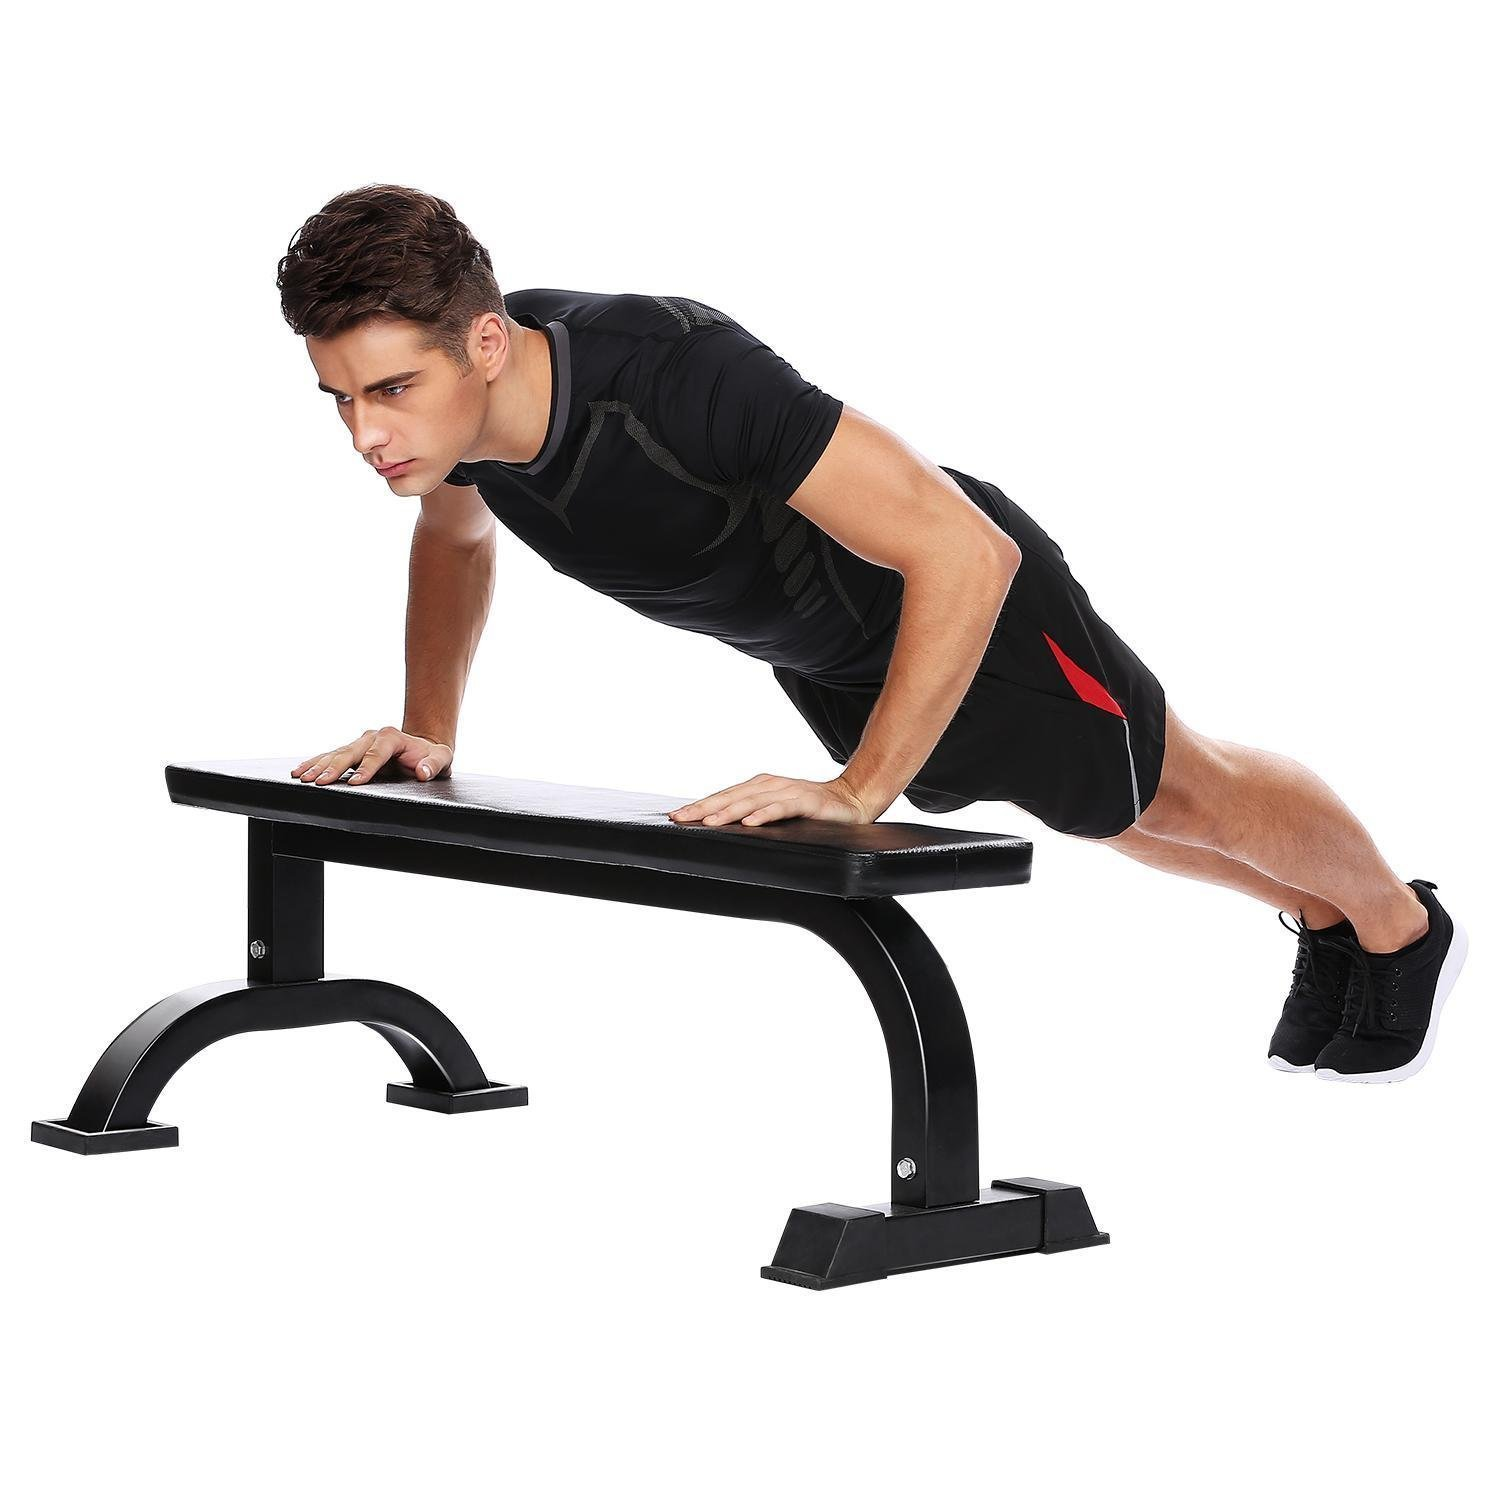 Heavy Duty Olympic Flat Weight Lifting Bench Home Fitness Workout Equipment for Weight Training and Ab Exercises US STOCK by Dtemple